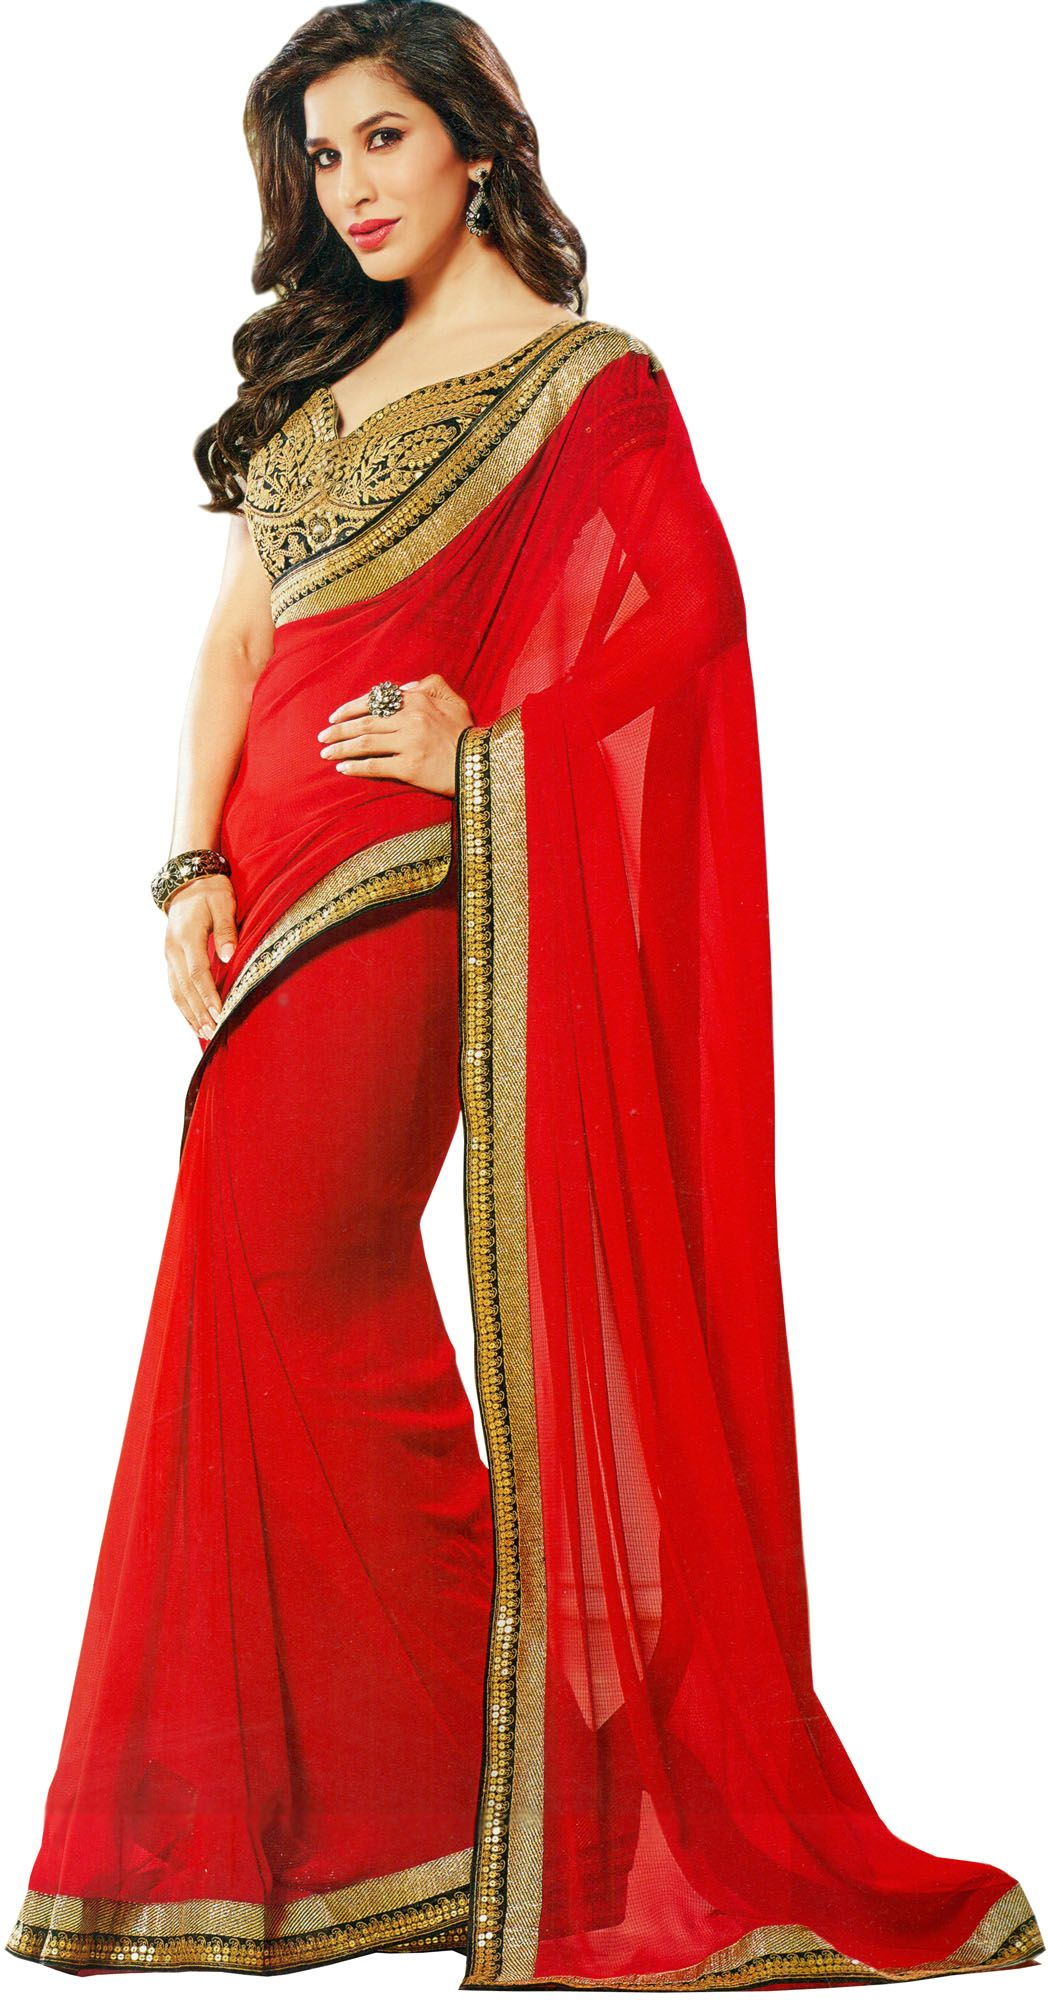 97c0c2a94c12e Tomato-Red Wedding Sari with Golden Patch Border and Sequins